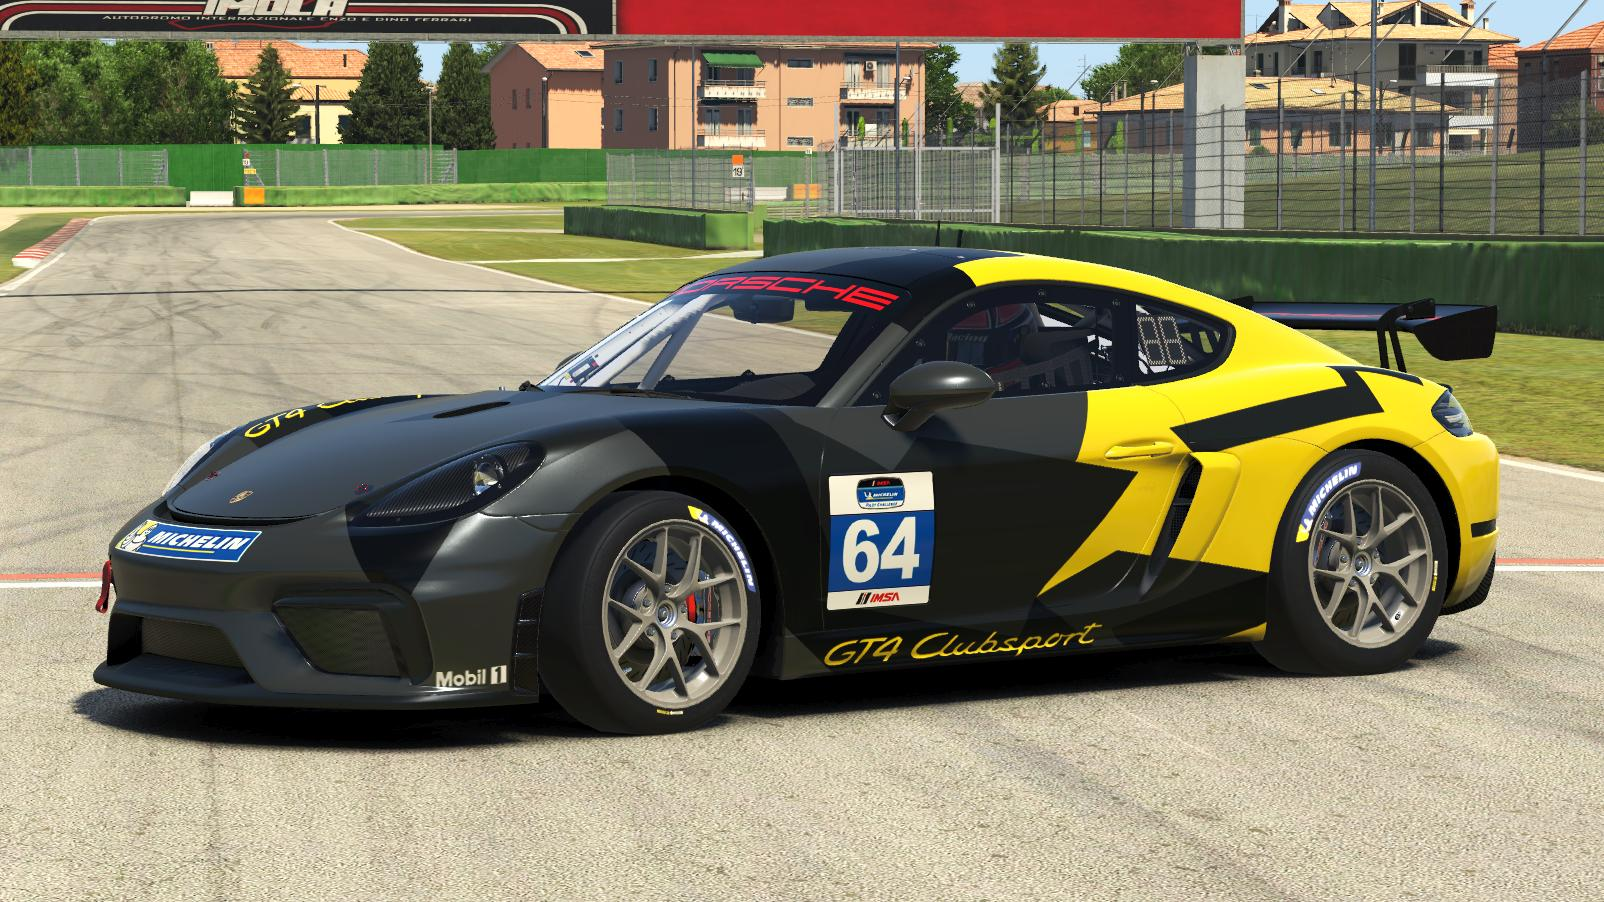 Preview of 2016 Porsche Cayman GT4 Factory test livery by Emil Kofod